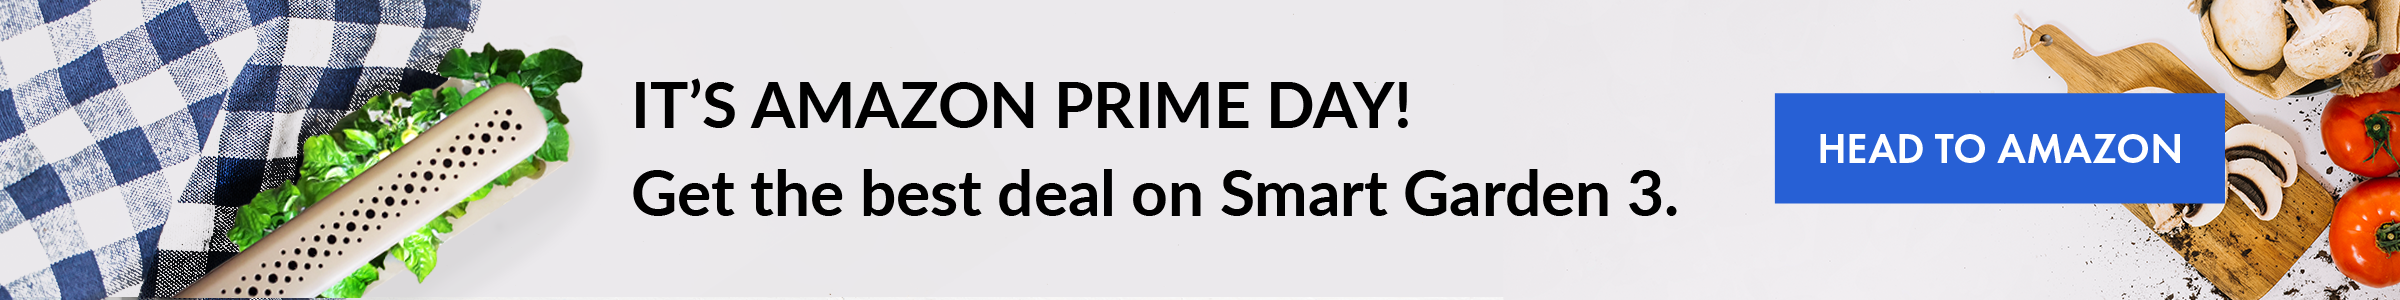 Prime day is here! Head to Amazon.com to get the best on Smart Garden 3